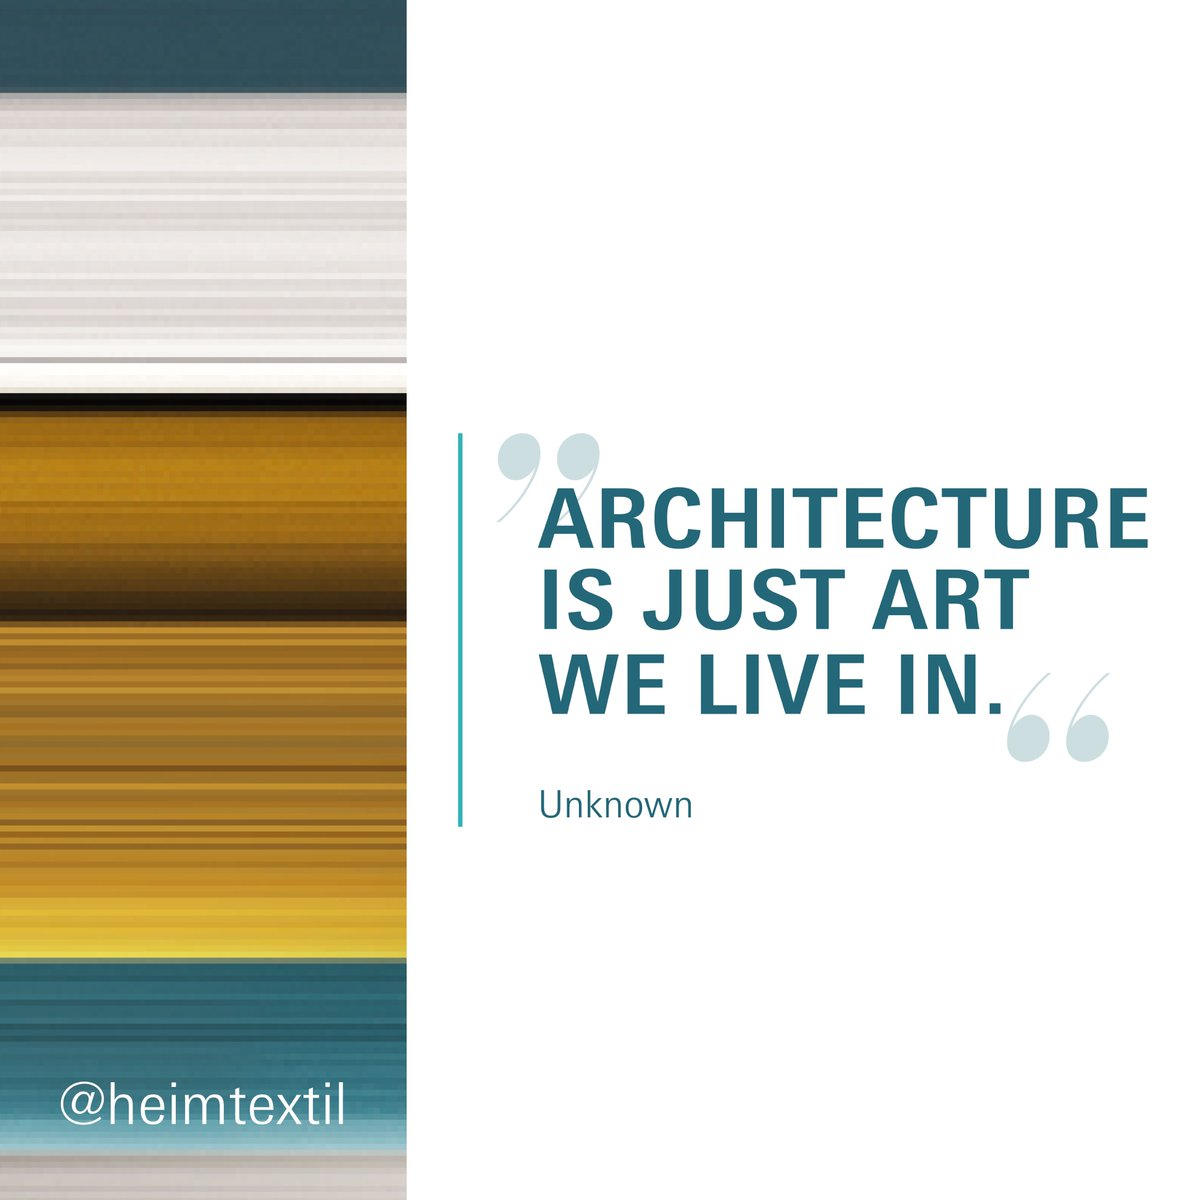 Also known as #interiorart. #quoteofthedaypic.twitter.com/bJNKb0O6AW